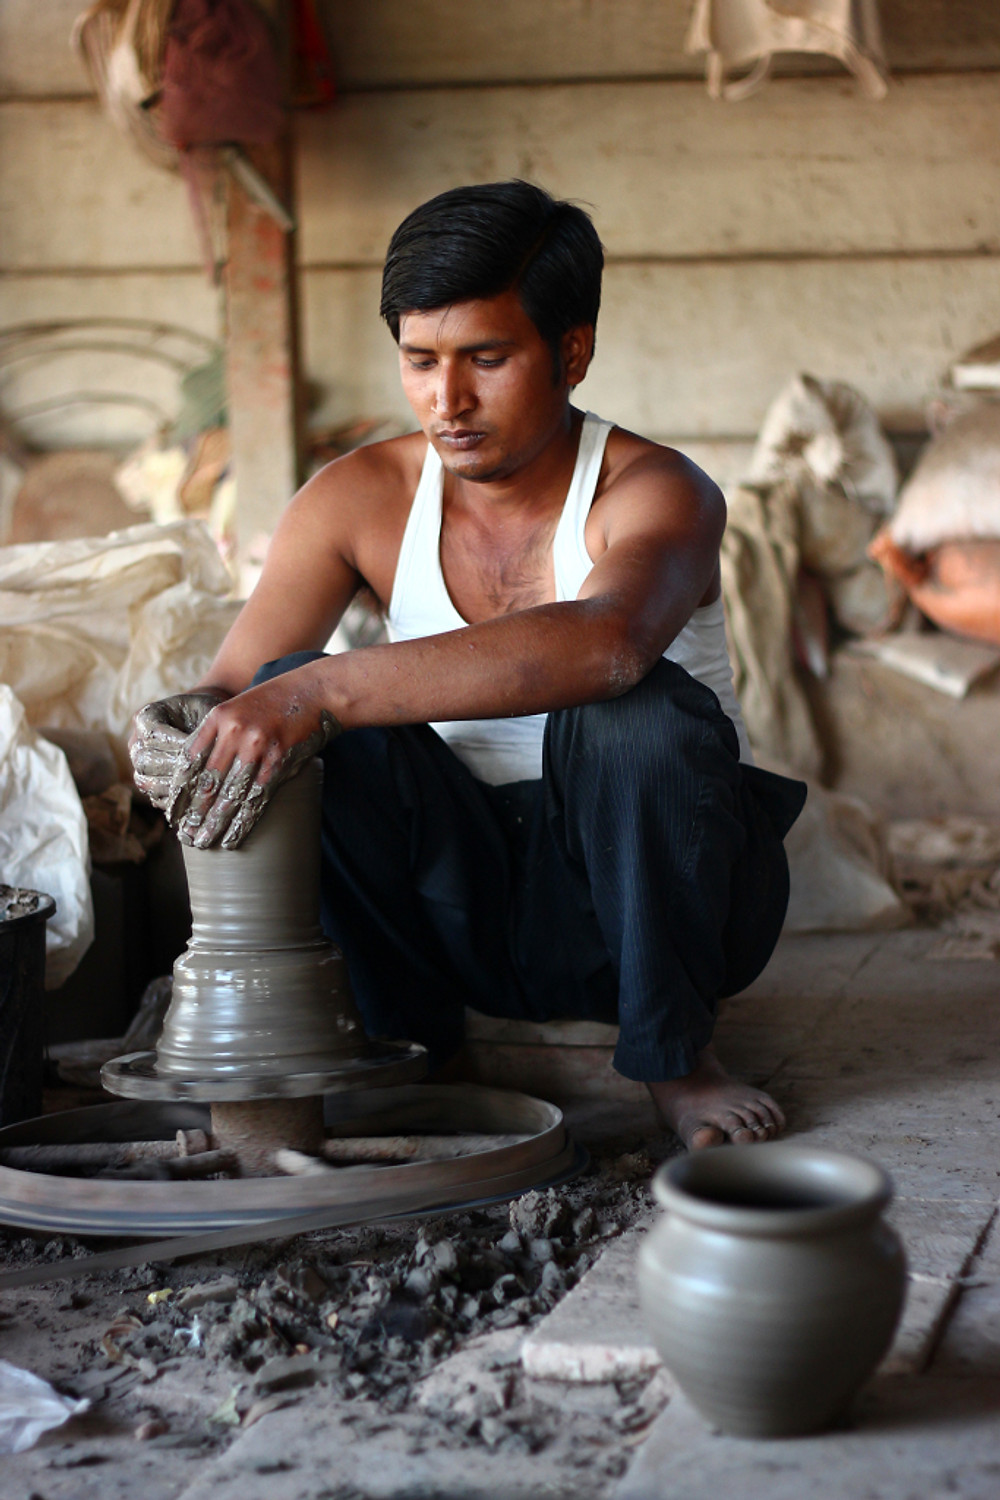 Man moulding clay to make pots in a workshop in gandhinagar gujarat india ieclectica Photograph by Ashwathi